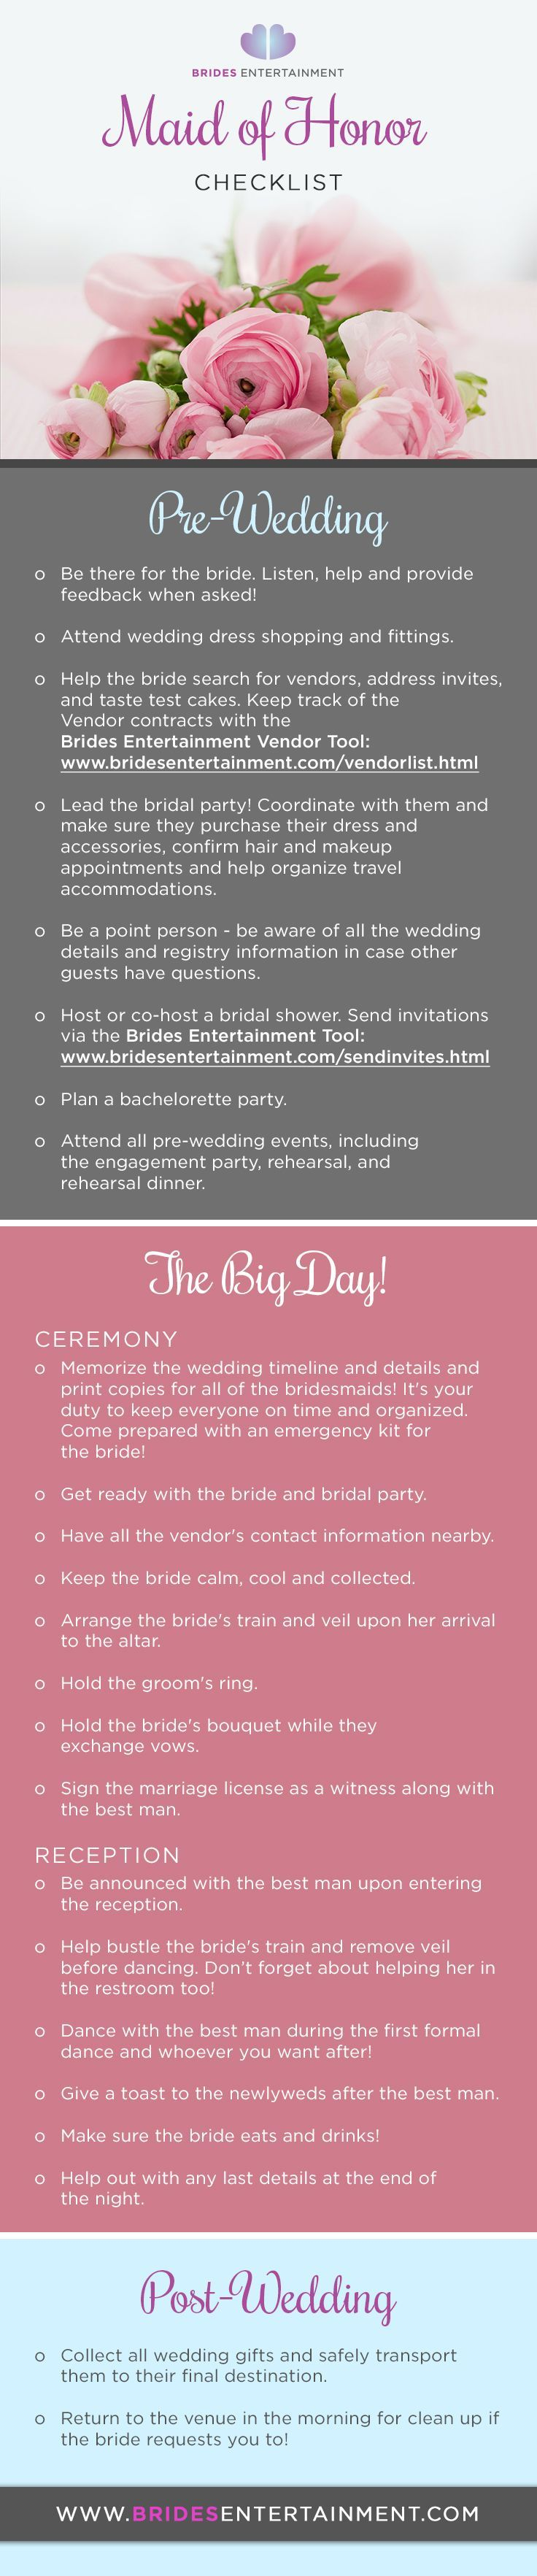 Brides Entertainment Maid Of Honor Duties Checklist Pre Wedding During And